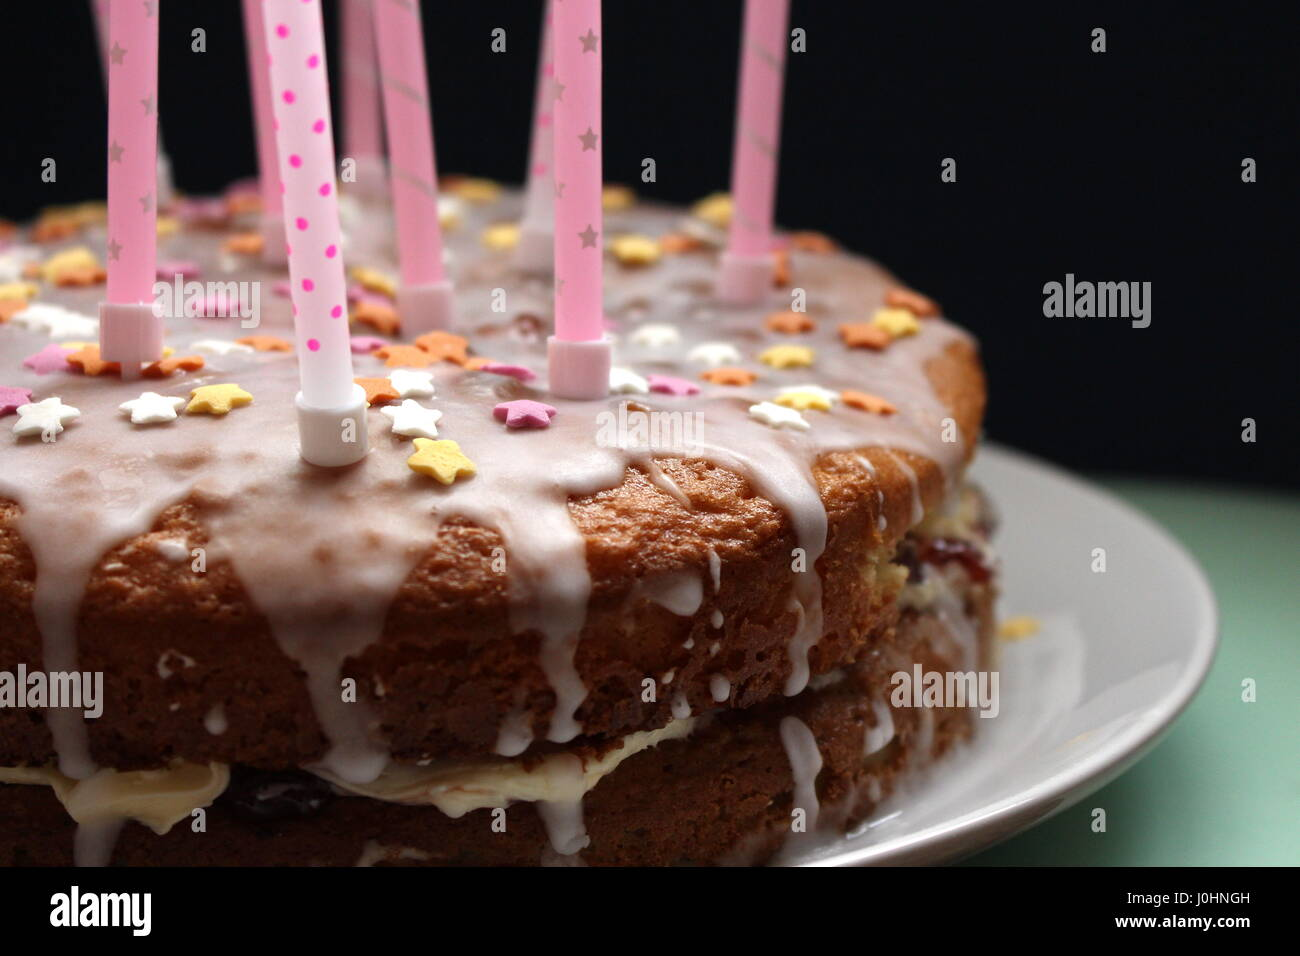 Birthday victoria sponge cake with runny icing, and pink candles, with sugar star decorations, against a black background - Stock Image